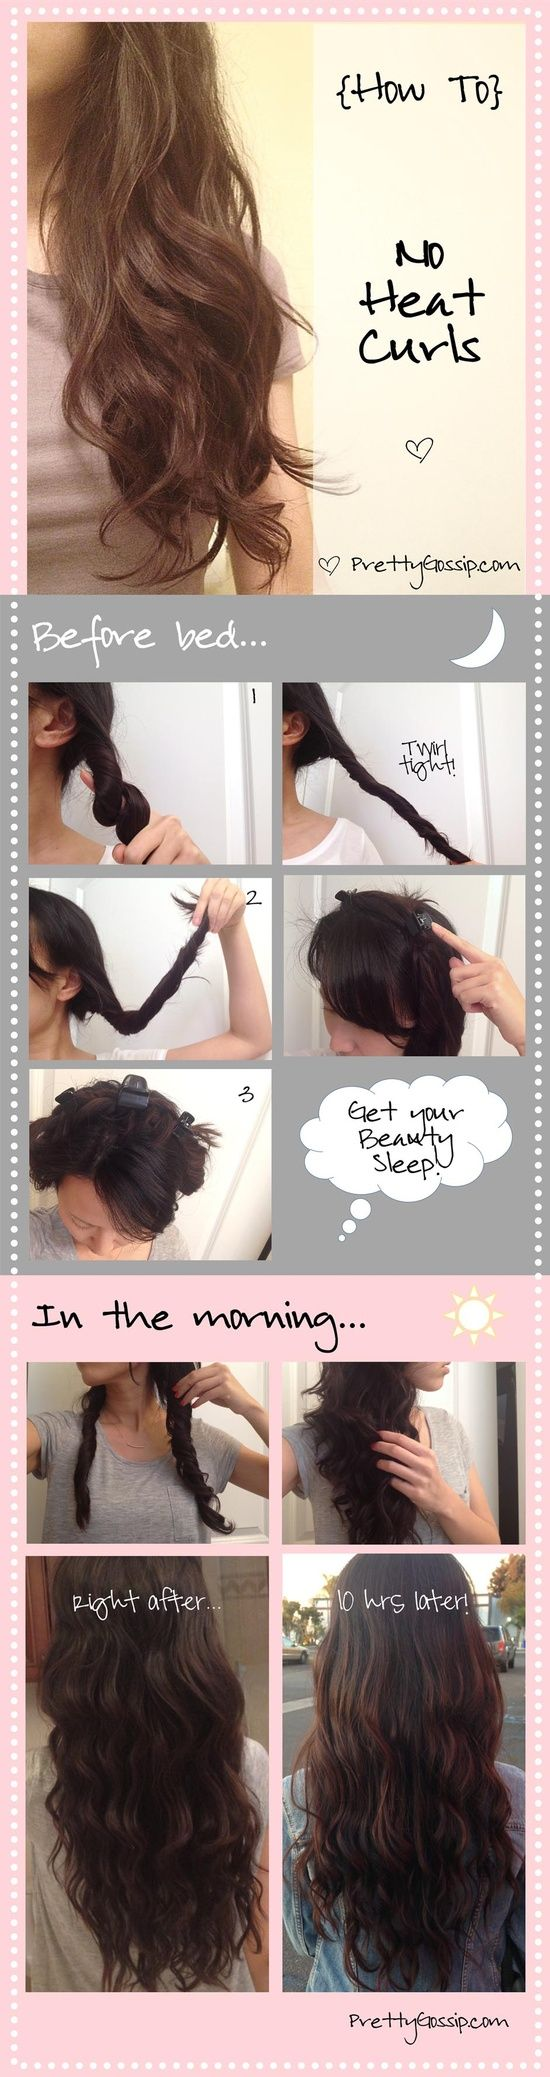 Easy no heat beachy waves. Crazy curly frizzy head problem solvers. I'm totally trying this tonight. Need some hair clips though!